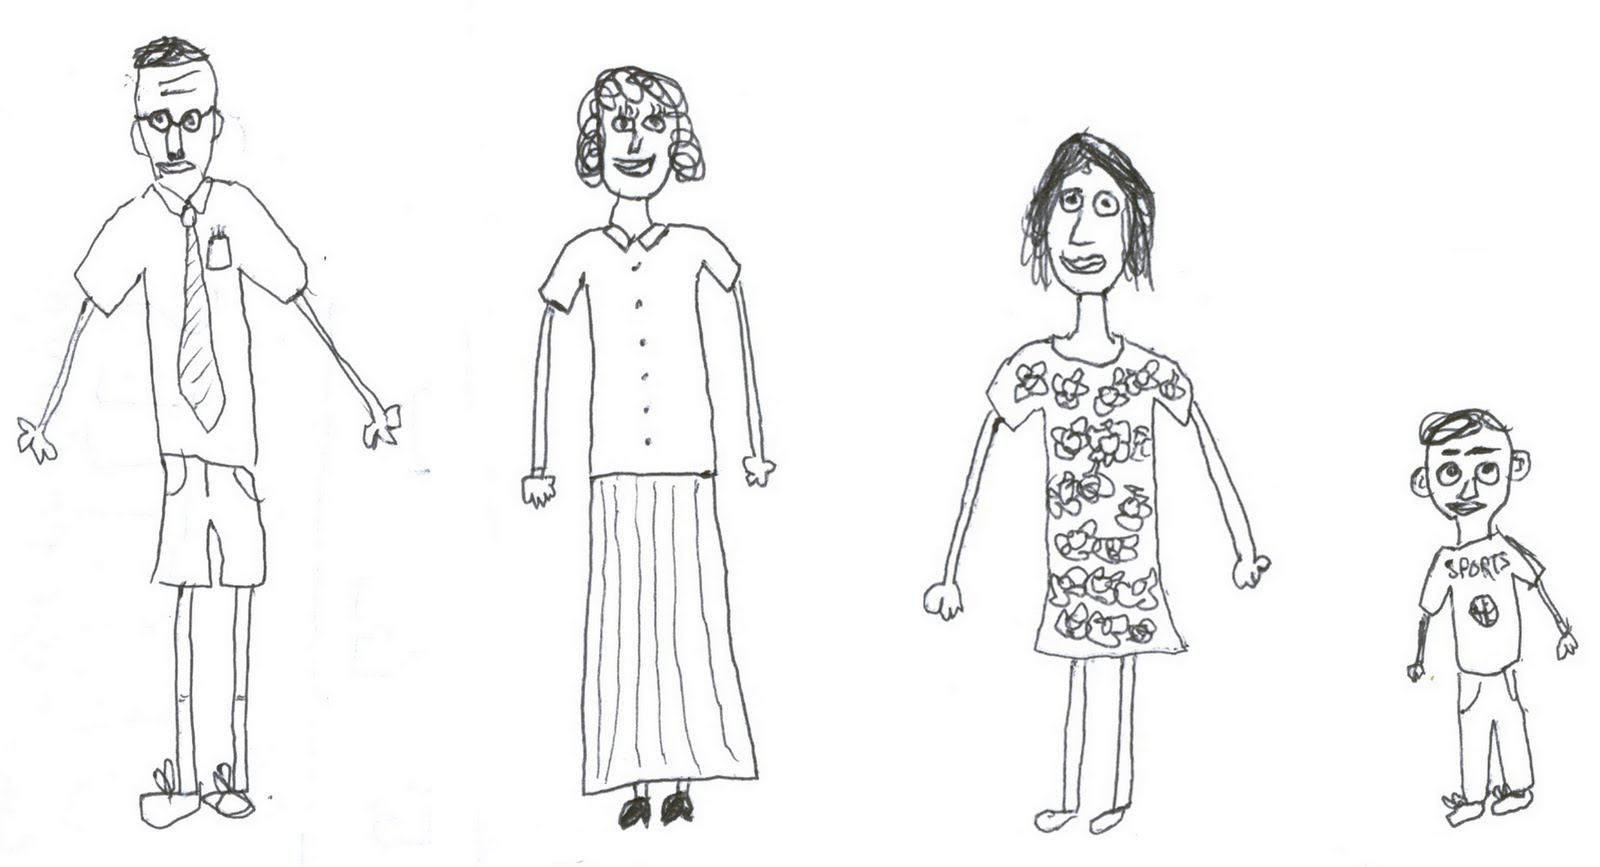 NEW LOVE STORIES: Family (Sketch)